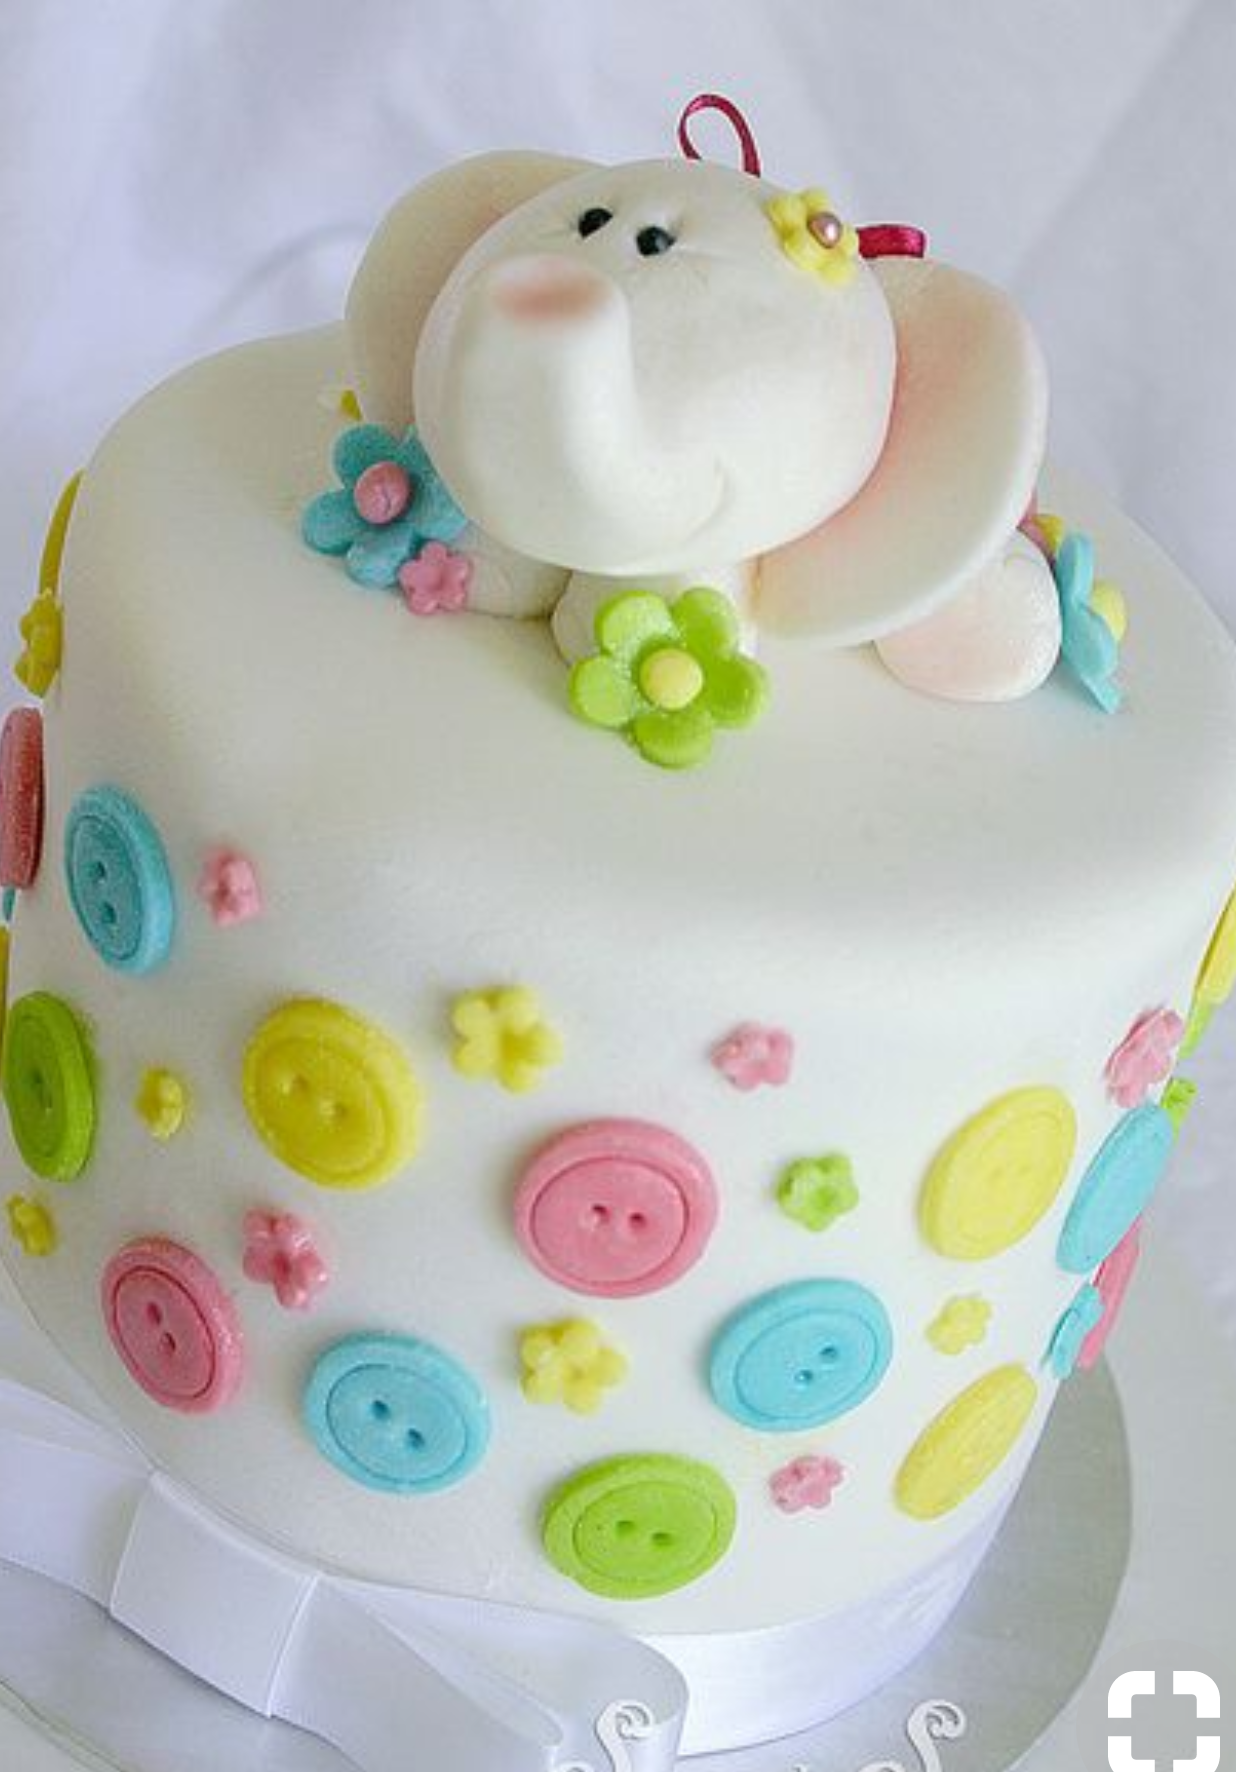 Bizcocho Para Decorar Con Fondant Pin By Anhara On Decoracion Tartas Pinterest Tortas